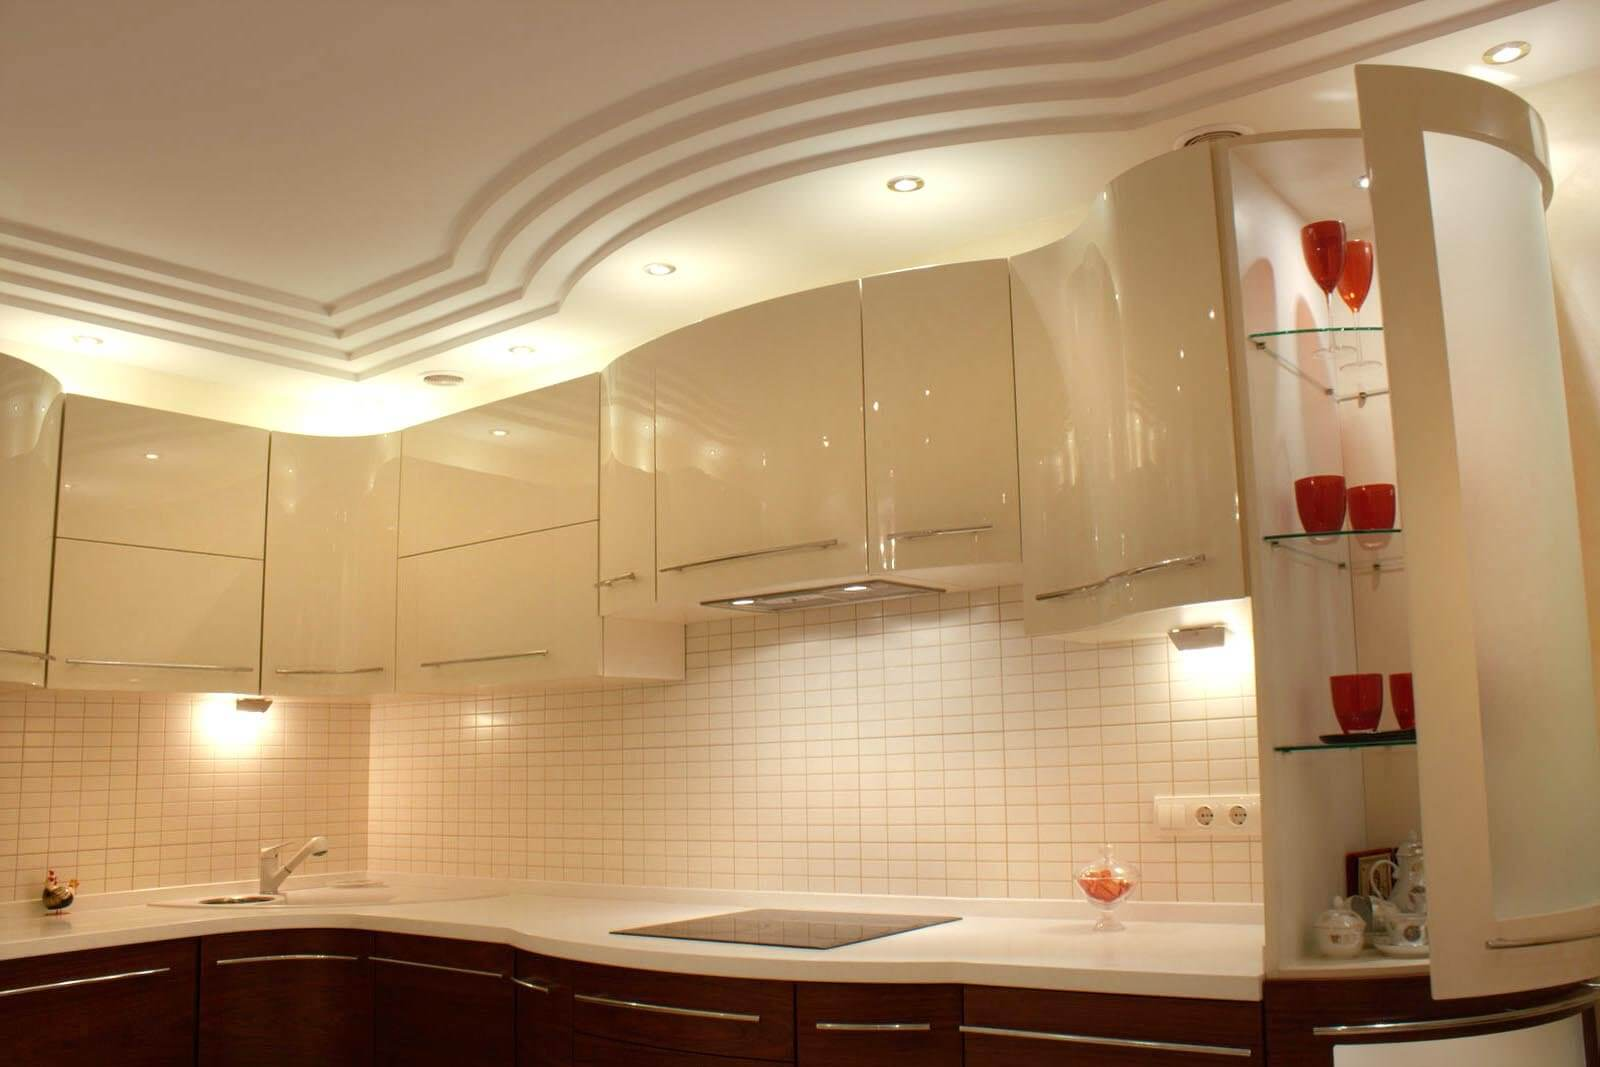 Plasterboard Ceiling Finishing Design Ideas For Apartment Simple But Stunning Combination Of Kitchen Facades With